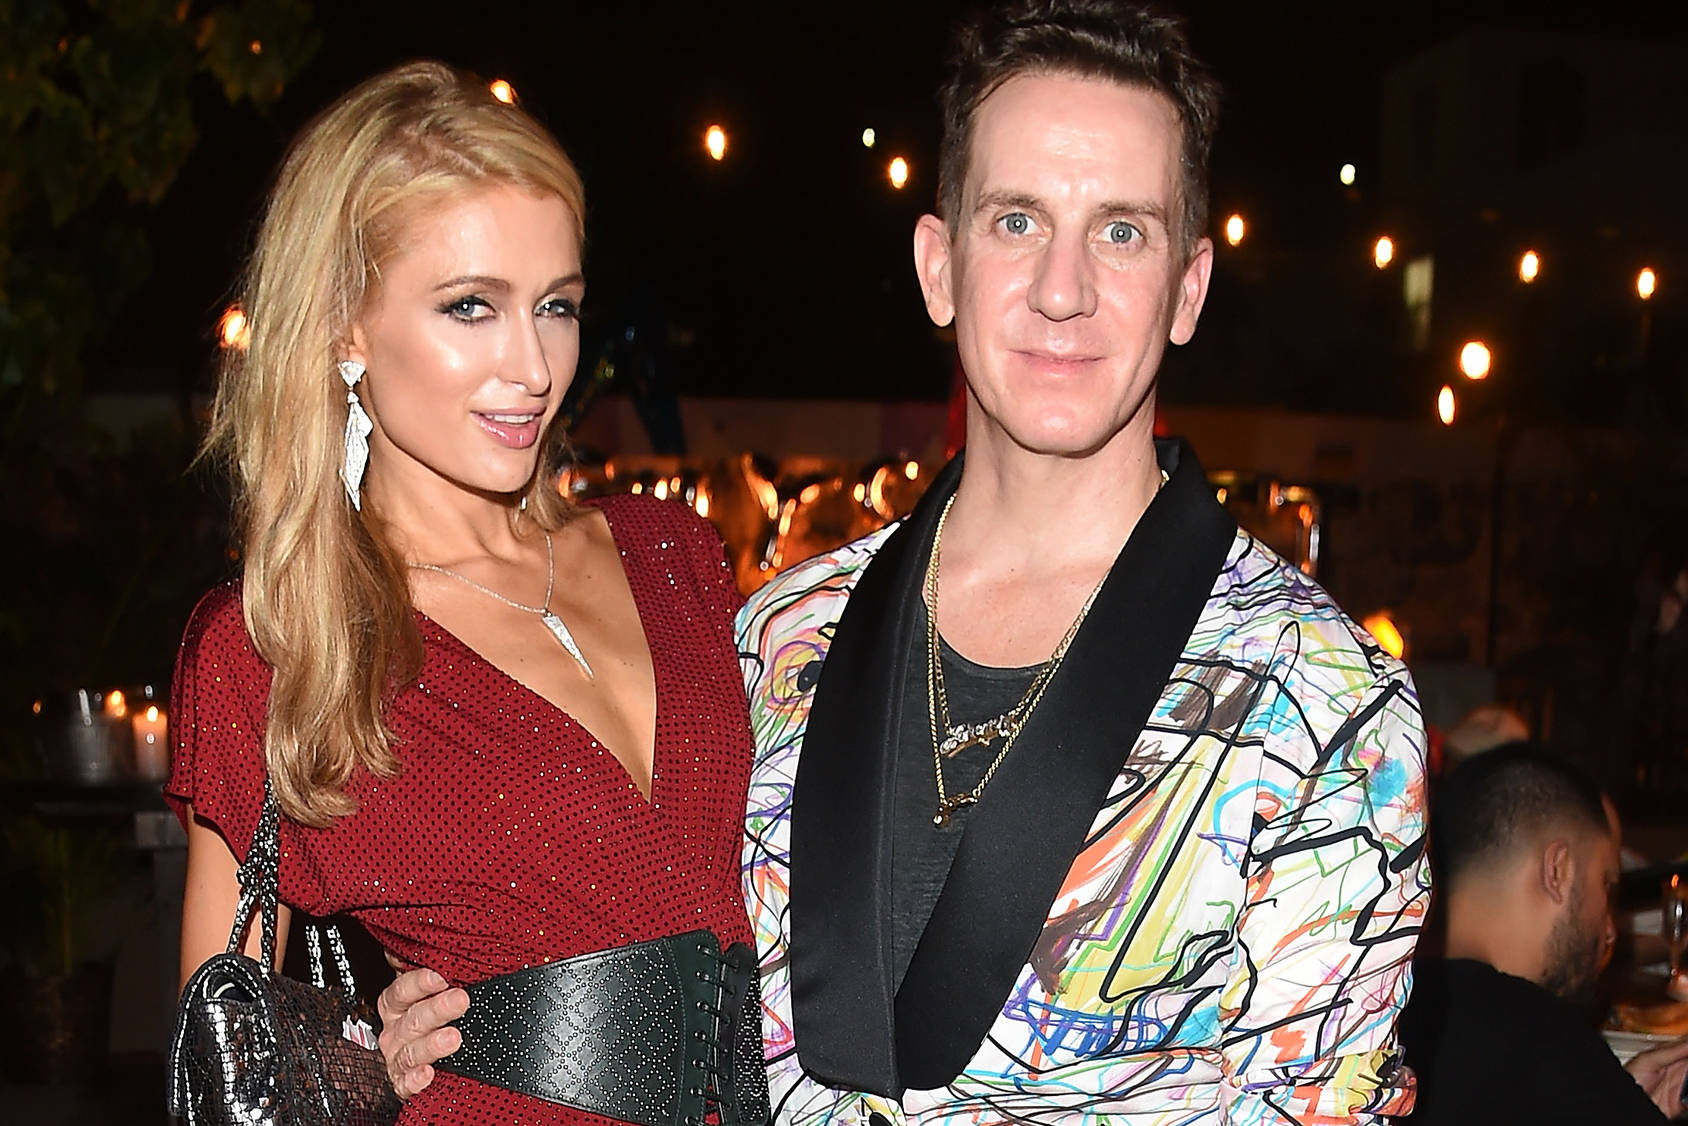 Paris Hilton and Jeremy Scott at the Jeremy Scott Art Basel Party, Getty Images.